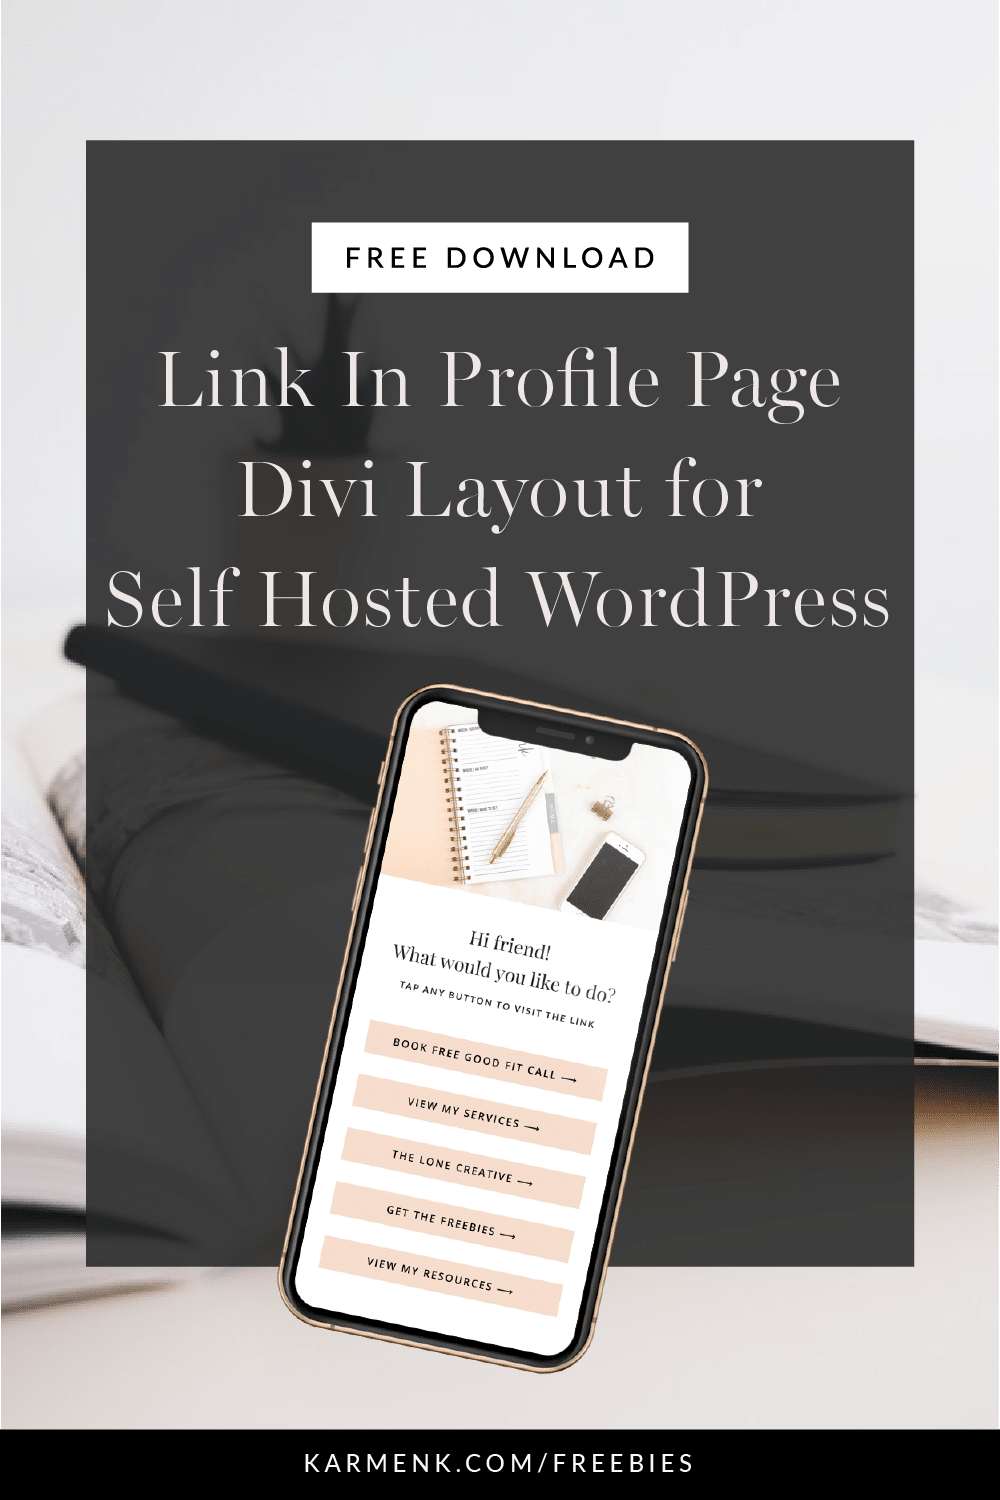 Instagram link in profile page divi layout for wordpress